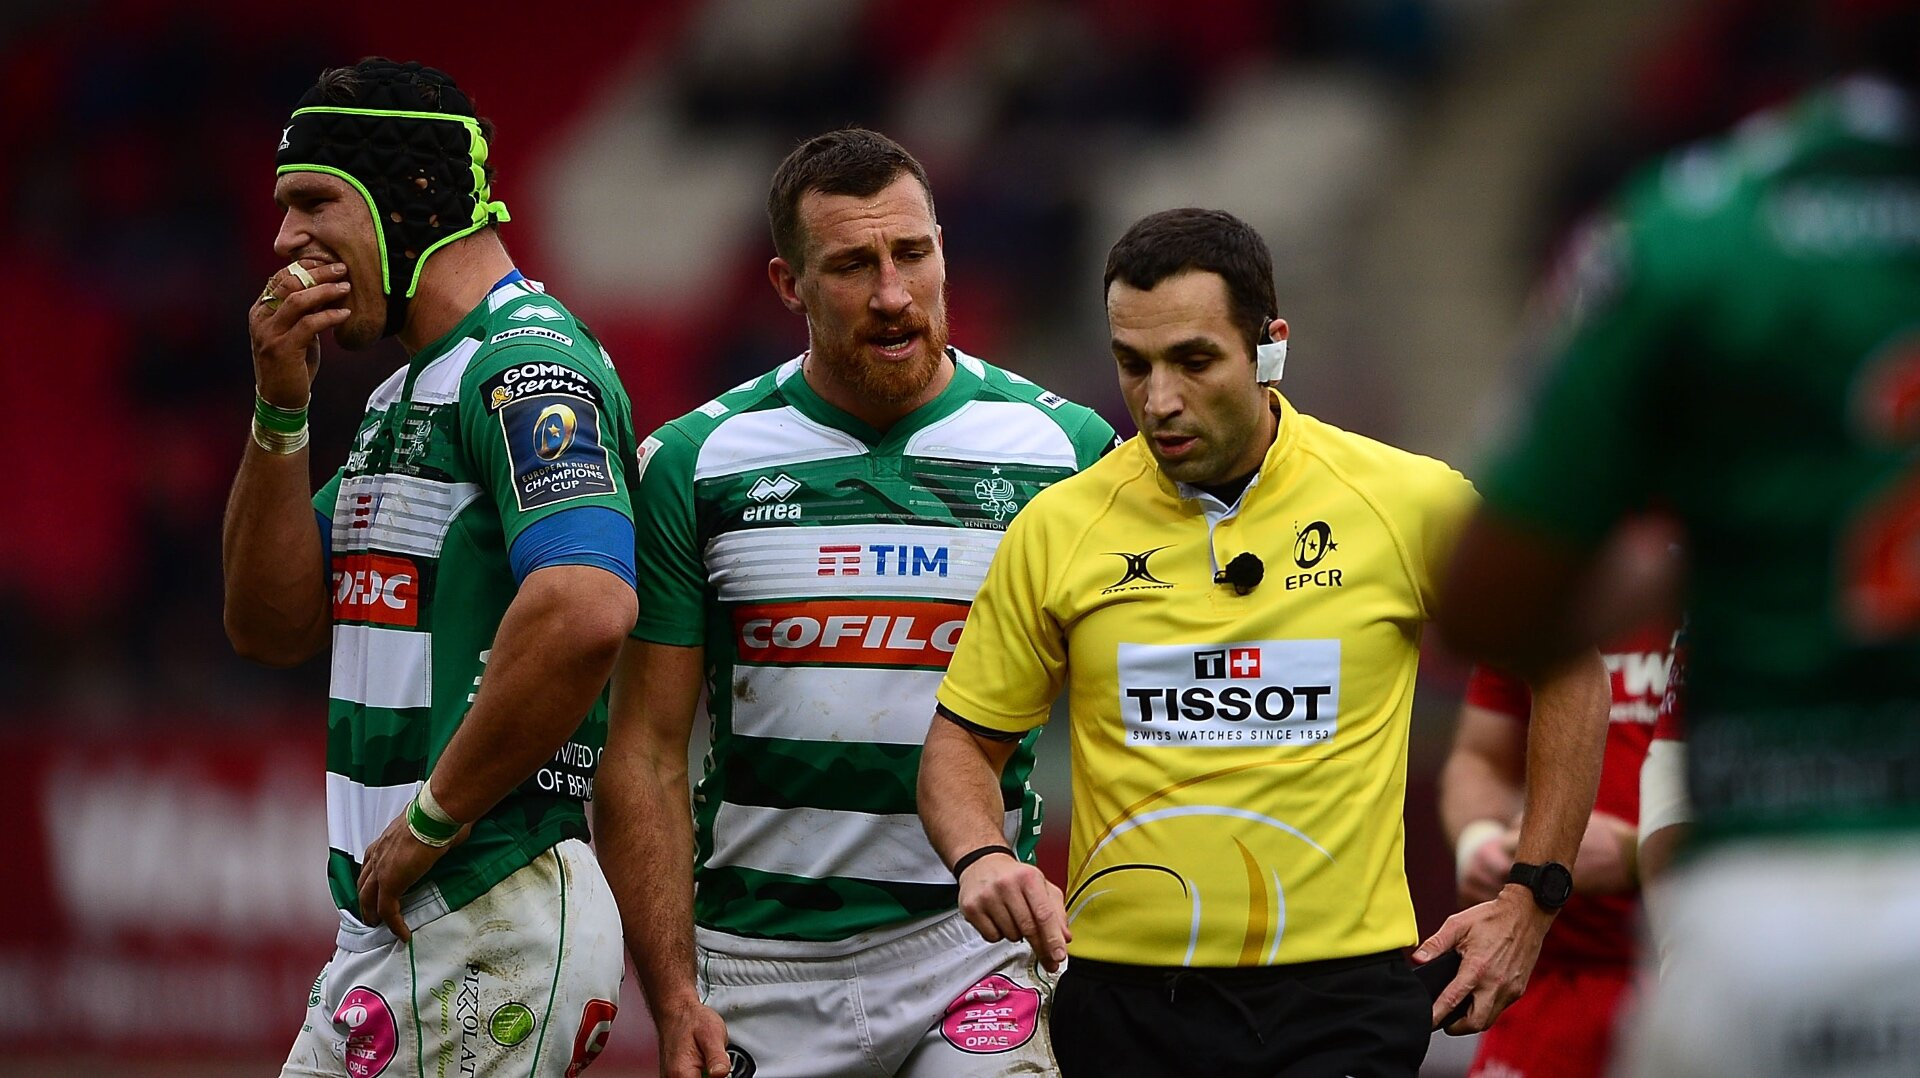 Benetton's Challenge Cup game against Agen cancelled